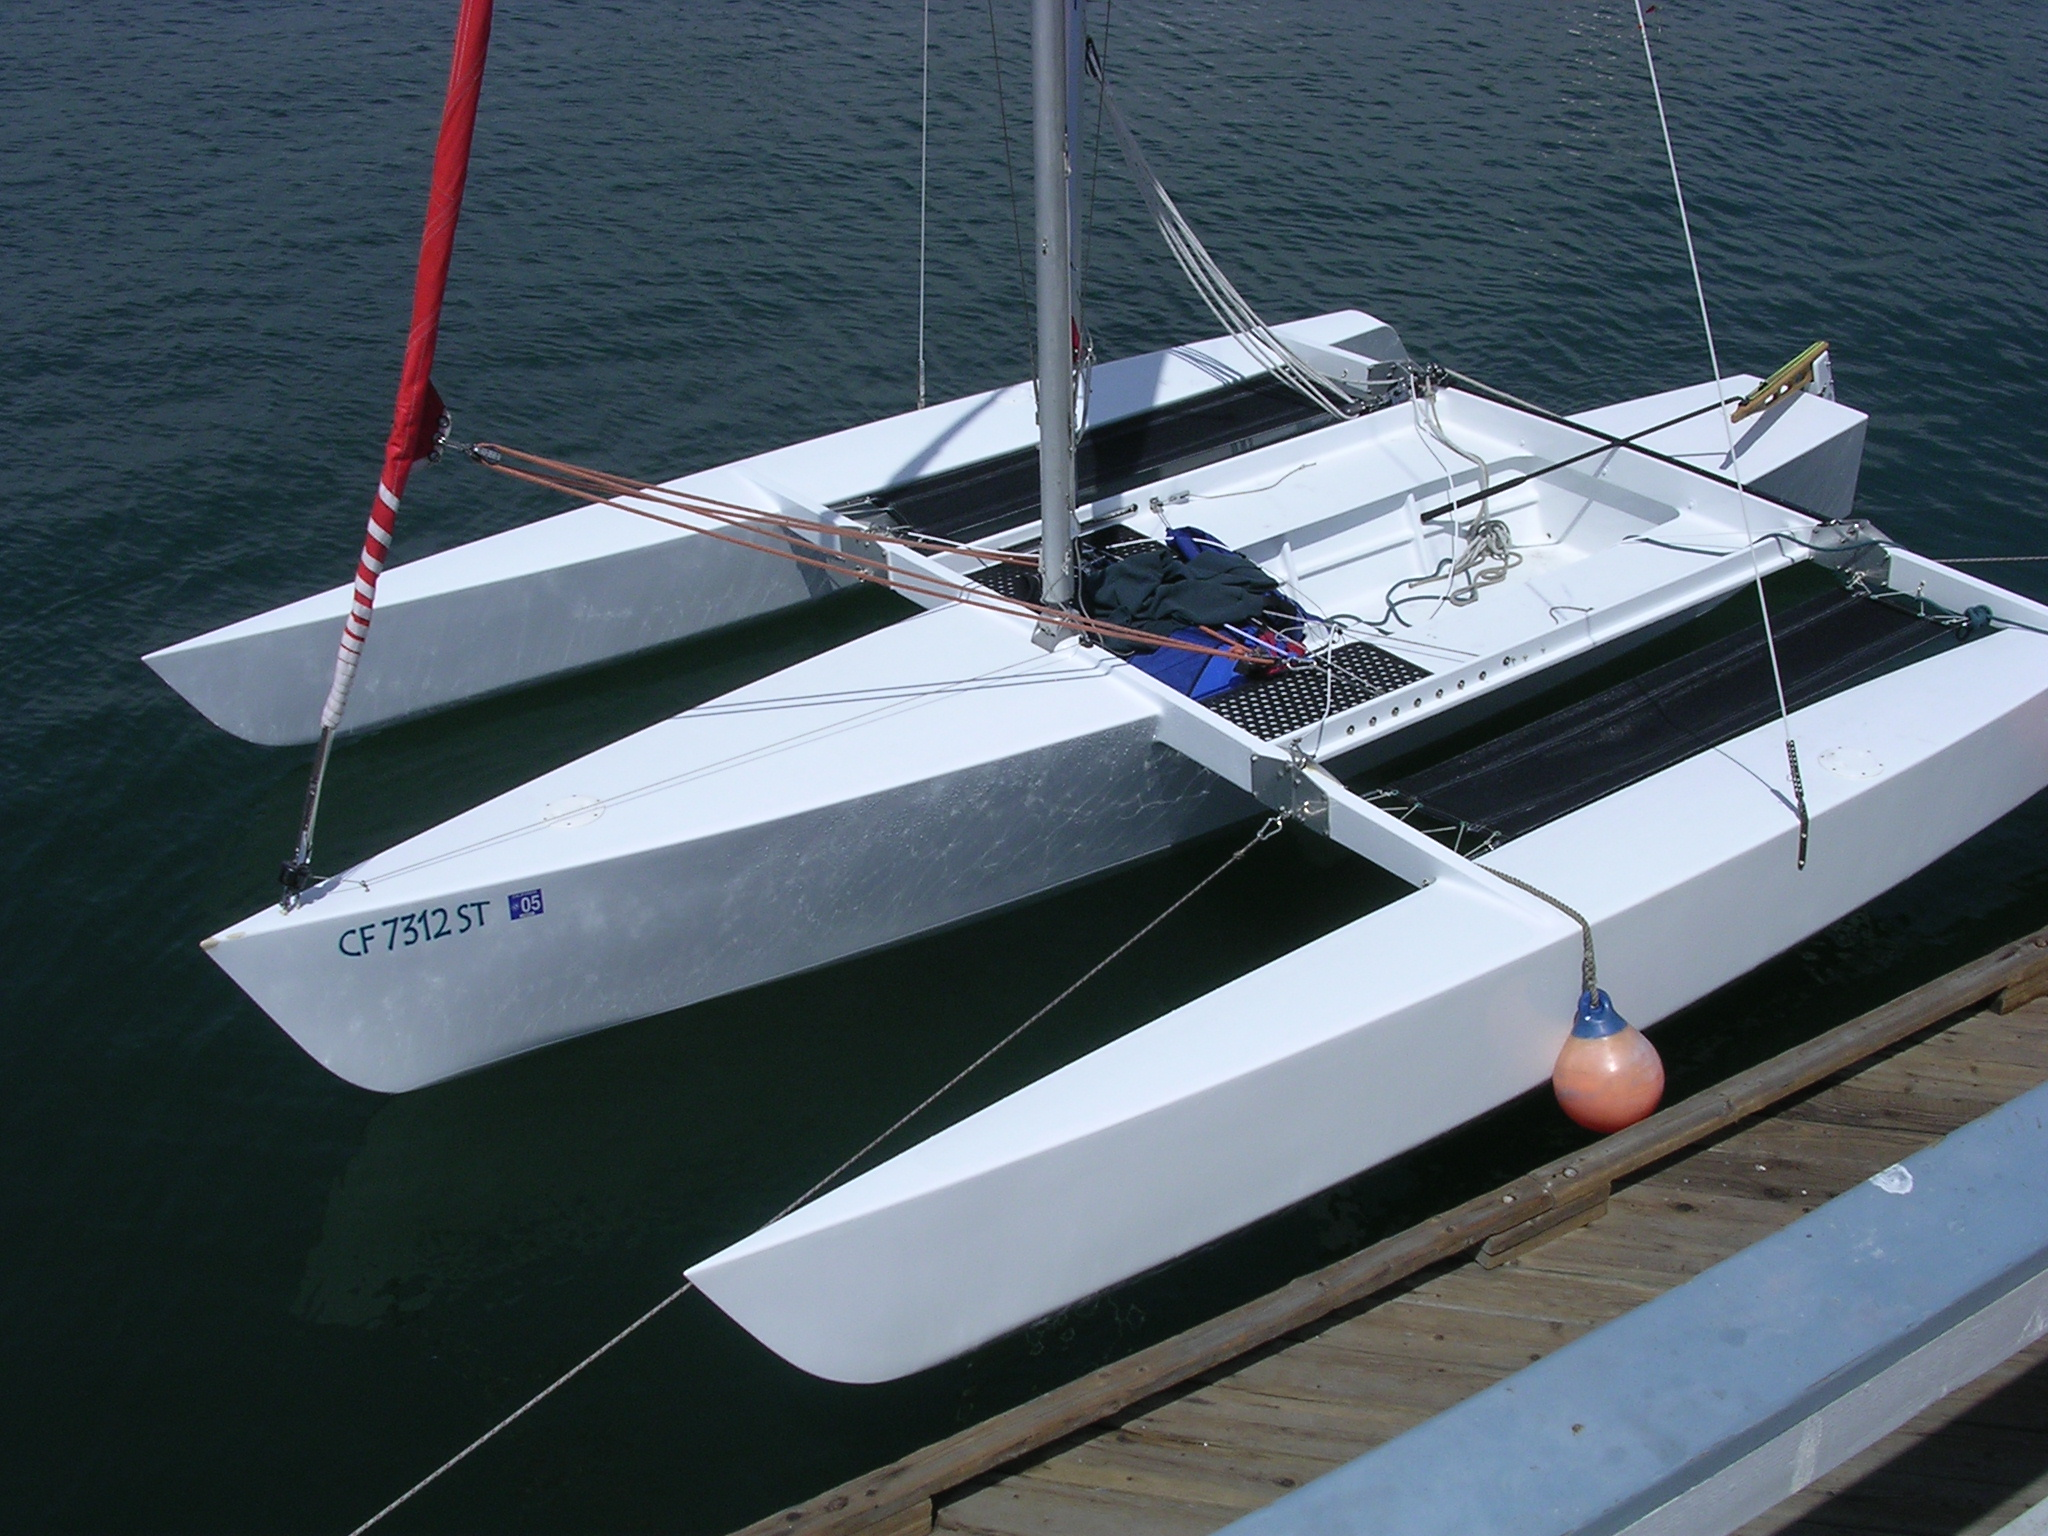 The Cross 18 Trimaran: An Interview with Jeff Turner ...